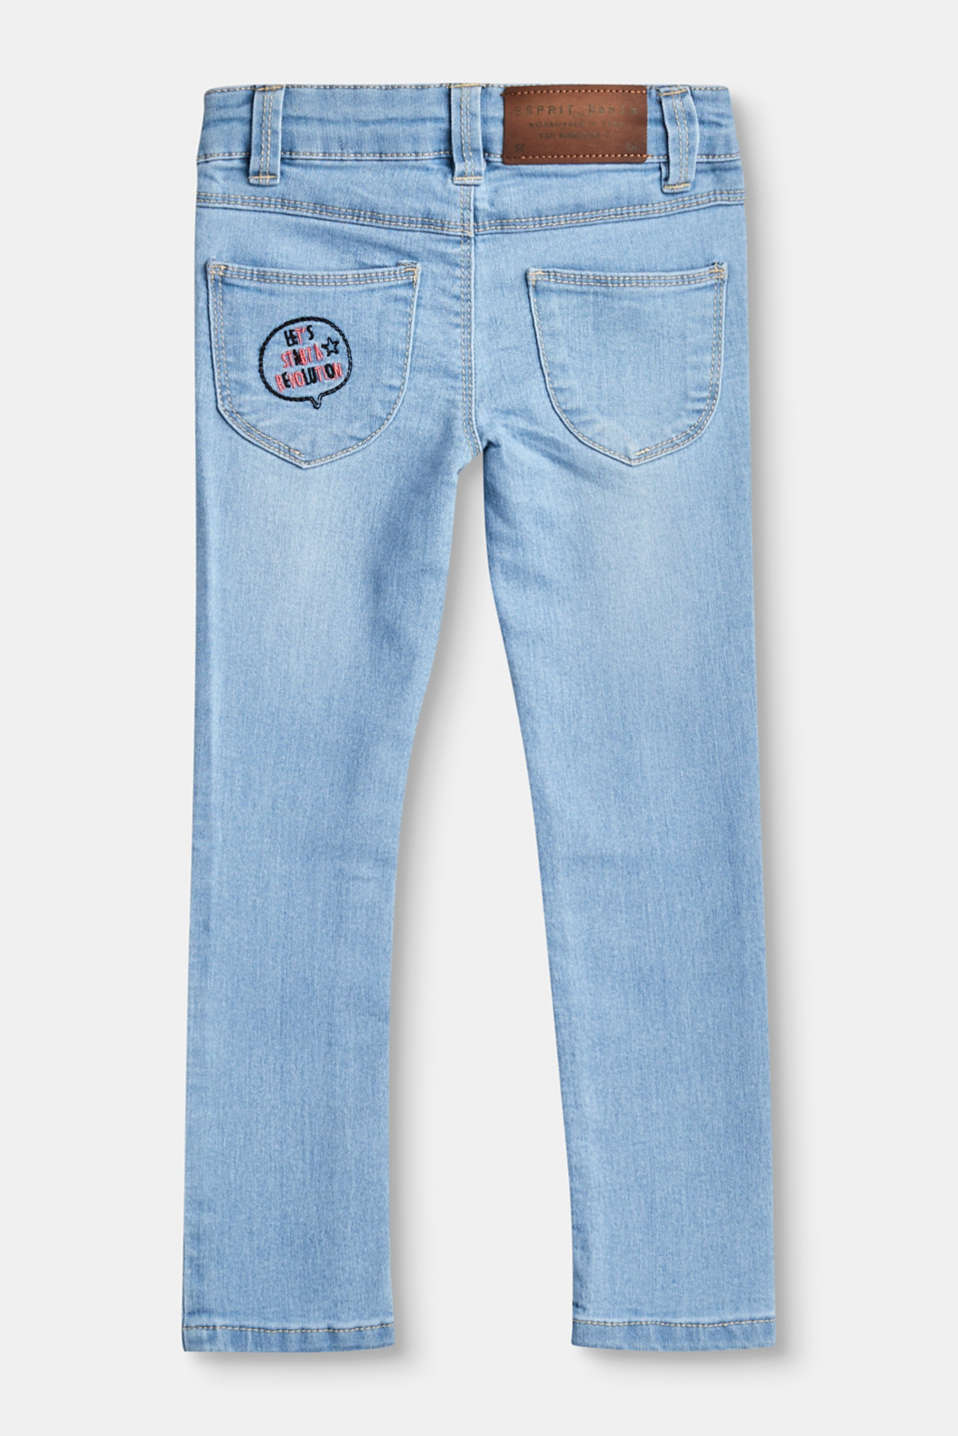 Embroidered stretch jeans, adjustable waist